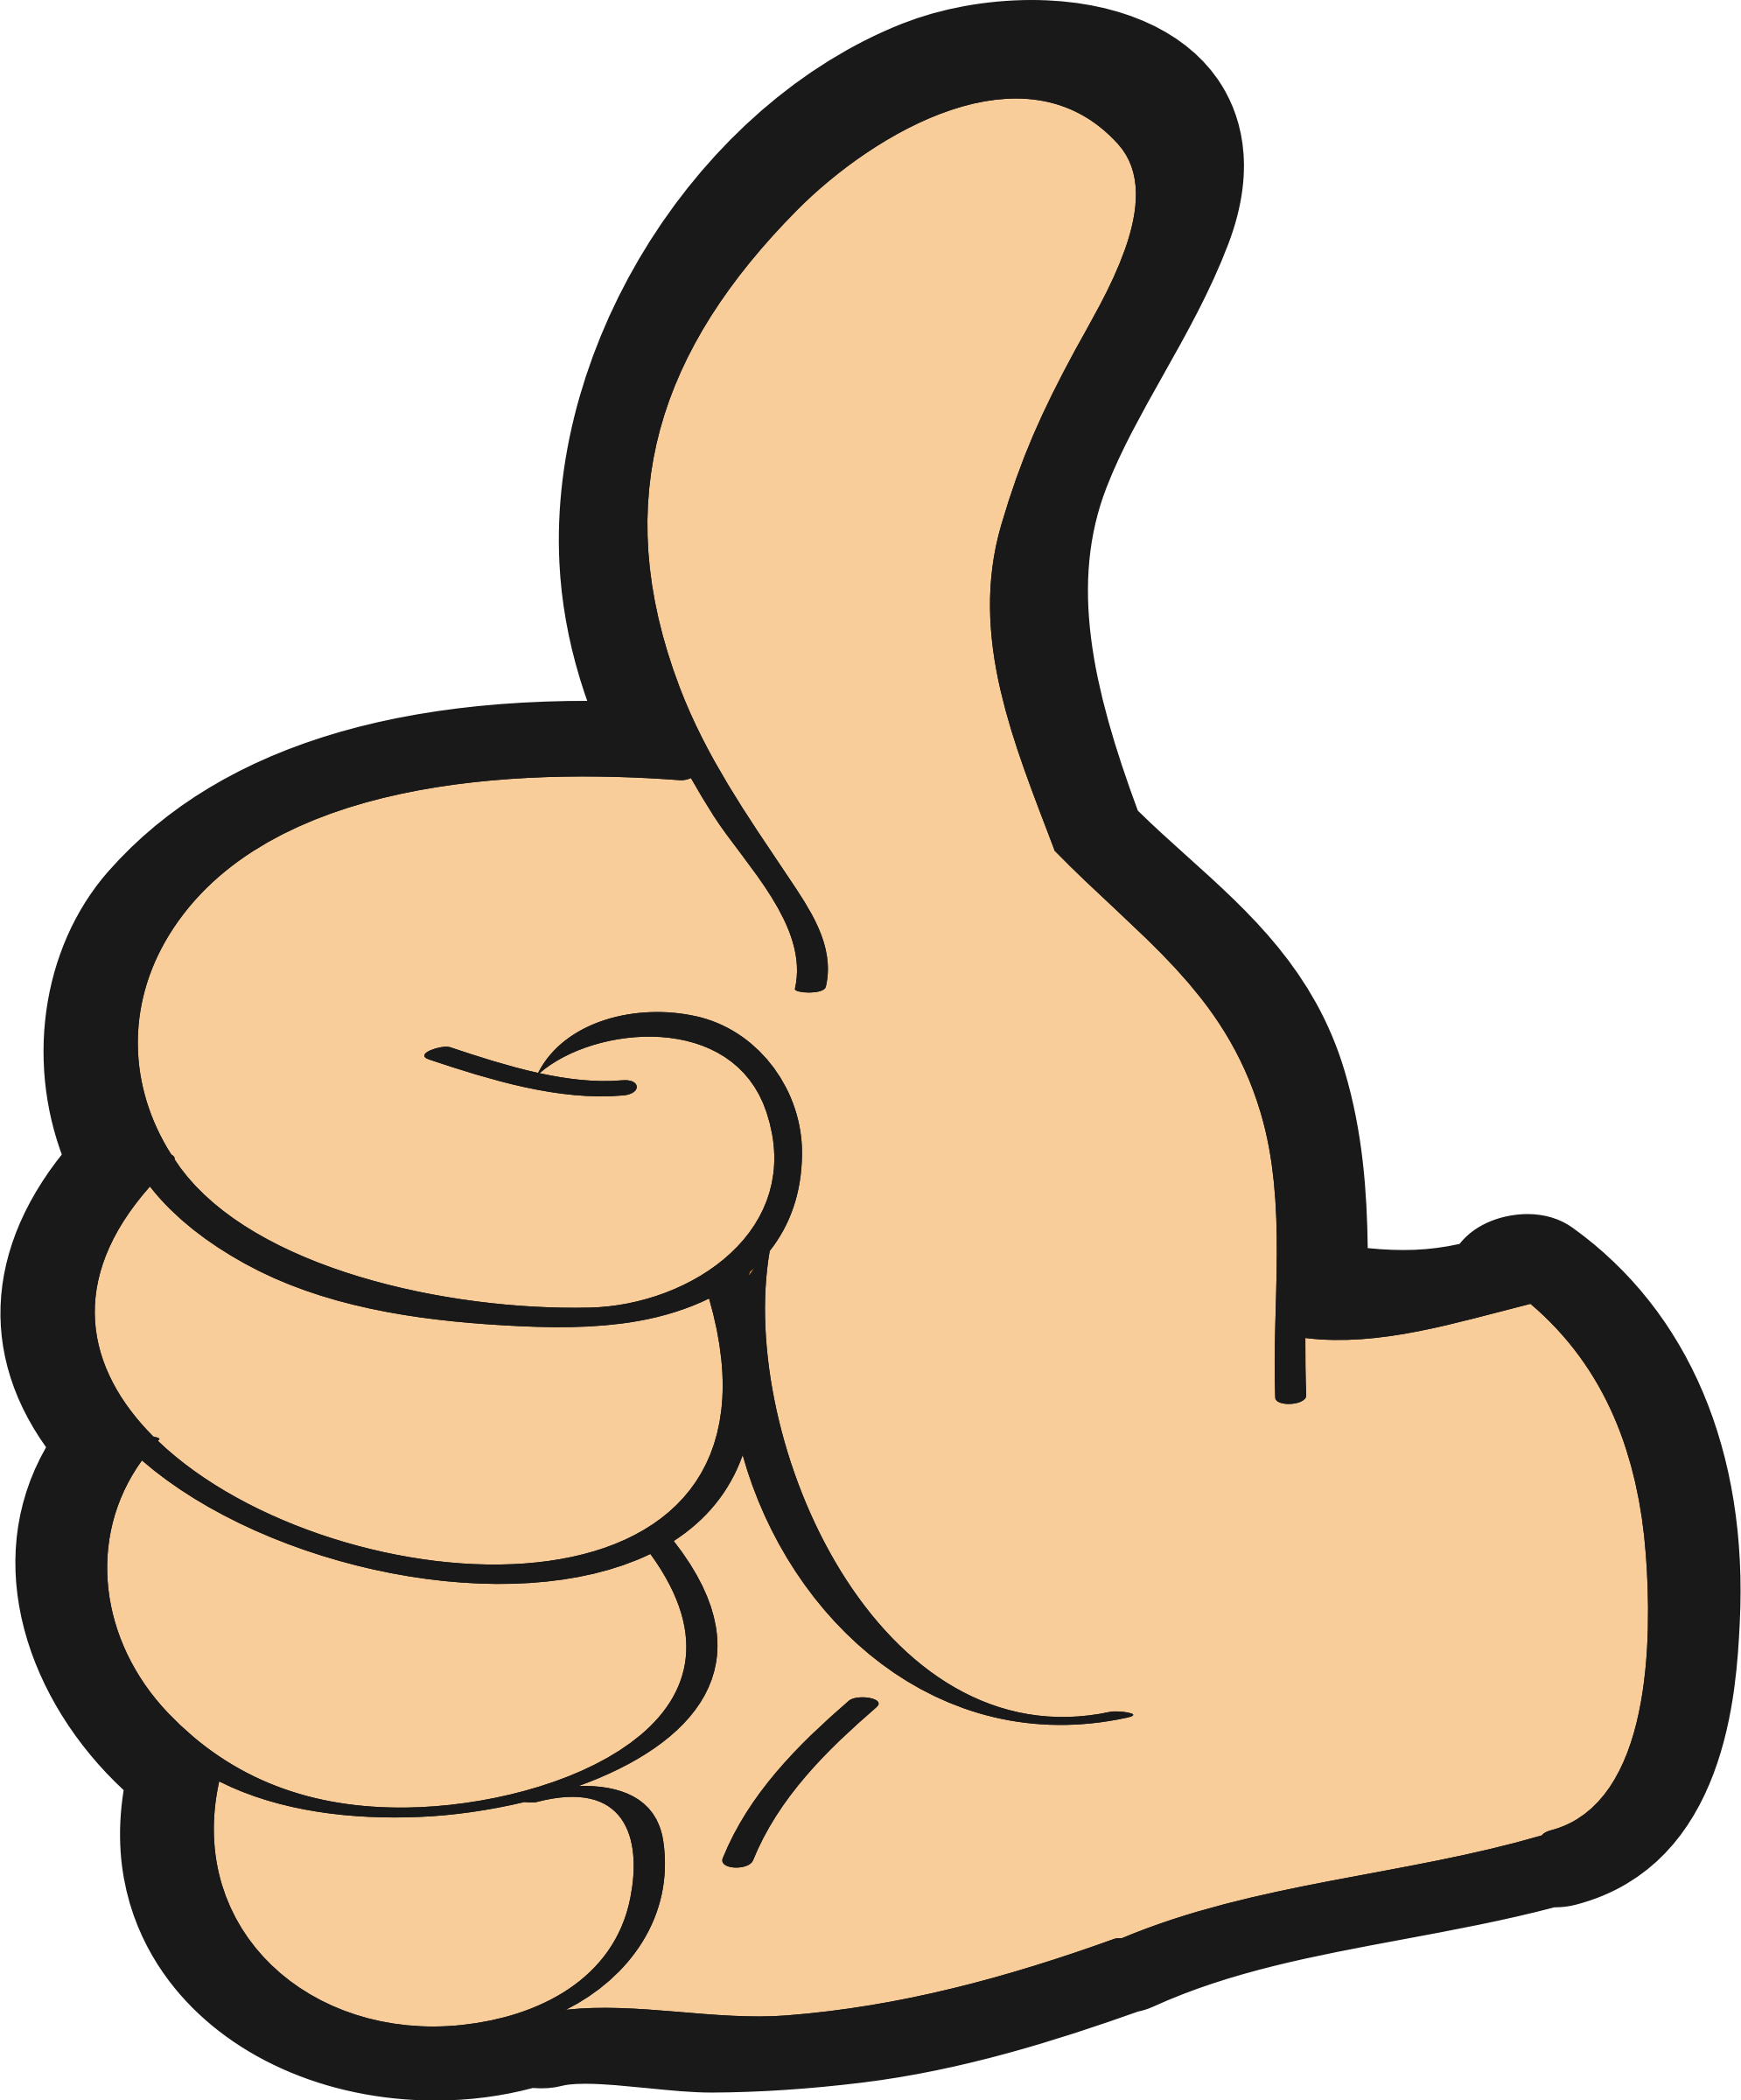 Clip art thumbs up graphic freeuse stock Clipart - Thumbs Up graphic freeuse stock